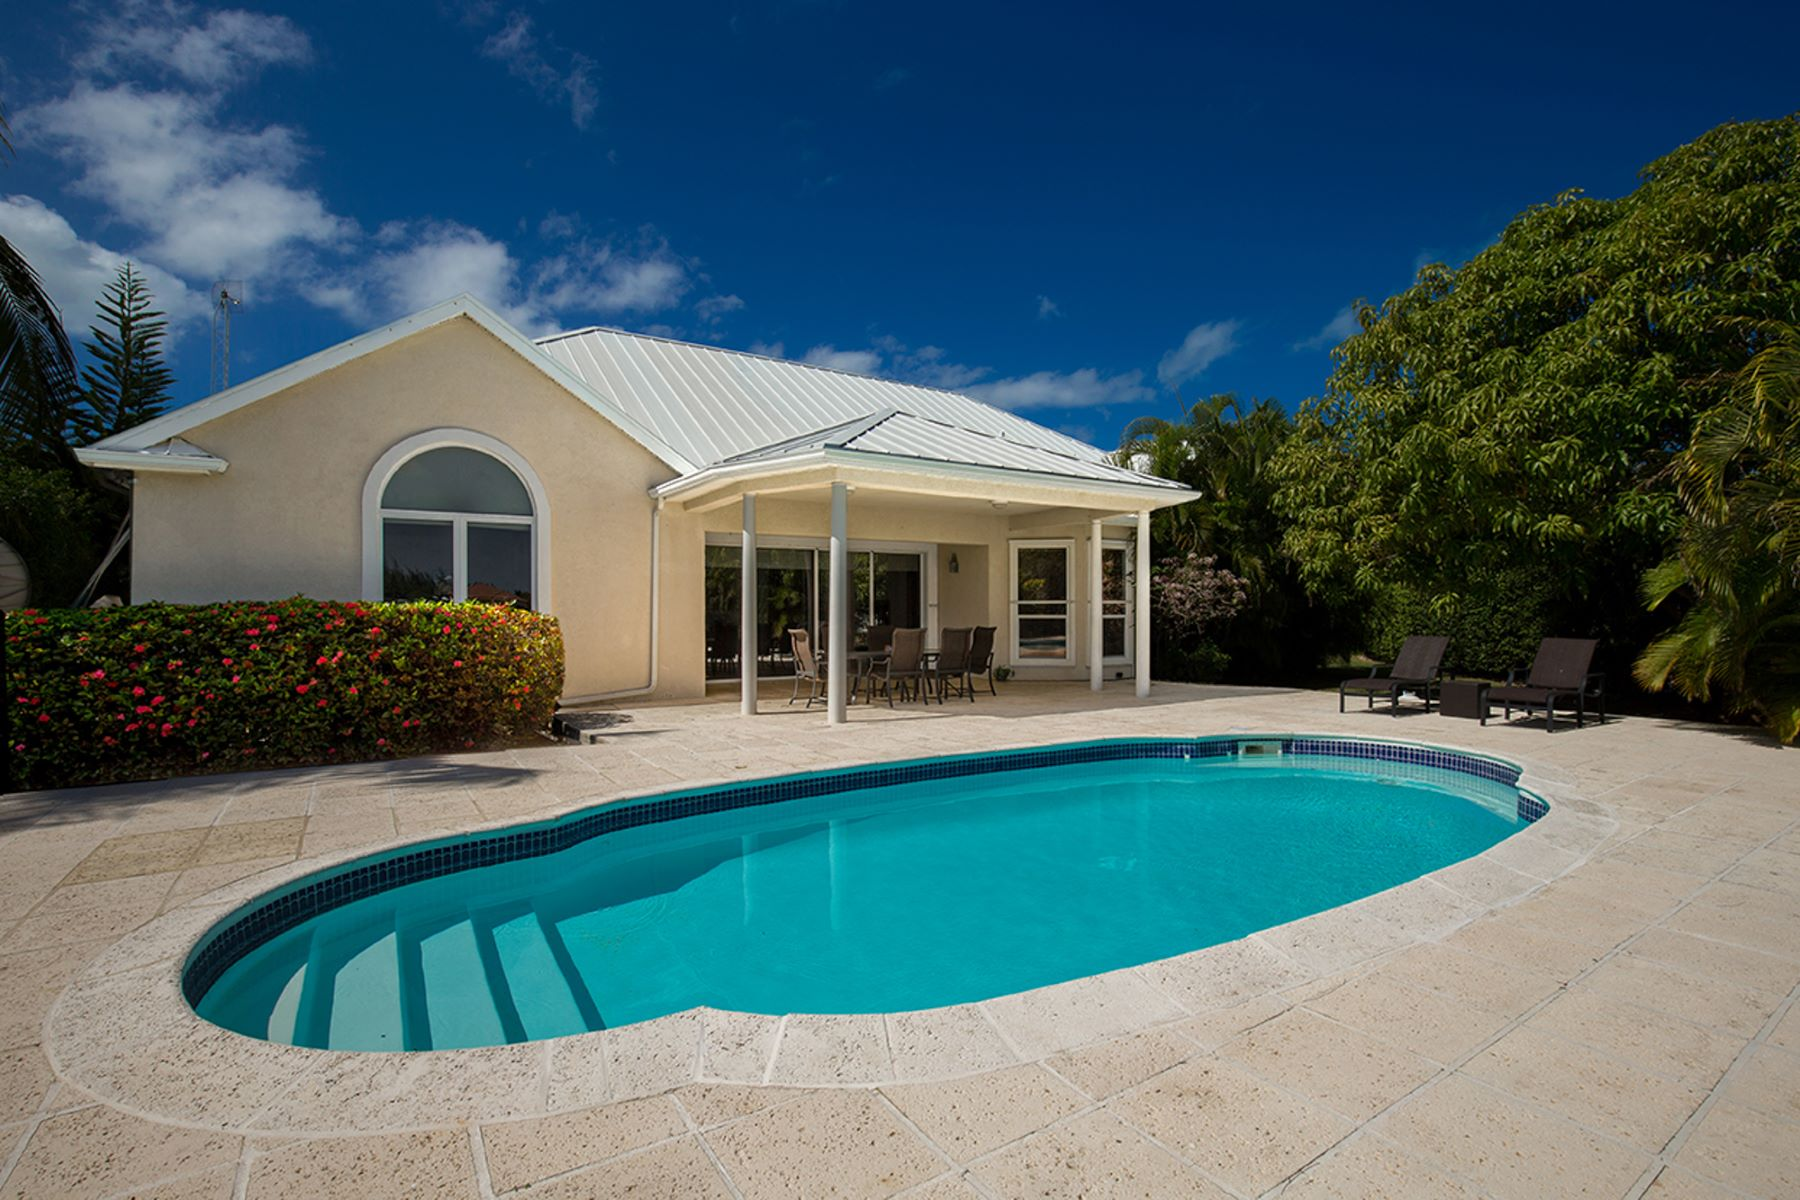 Single Family Home for Sale at Patrick's Island Executive Villa Patricks Island, Cayman Islands